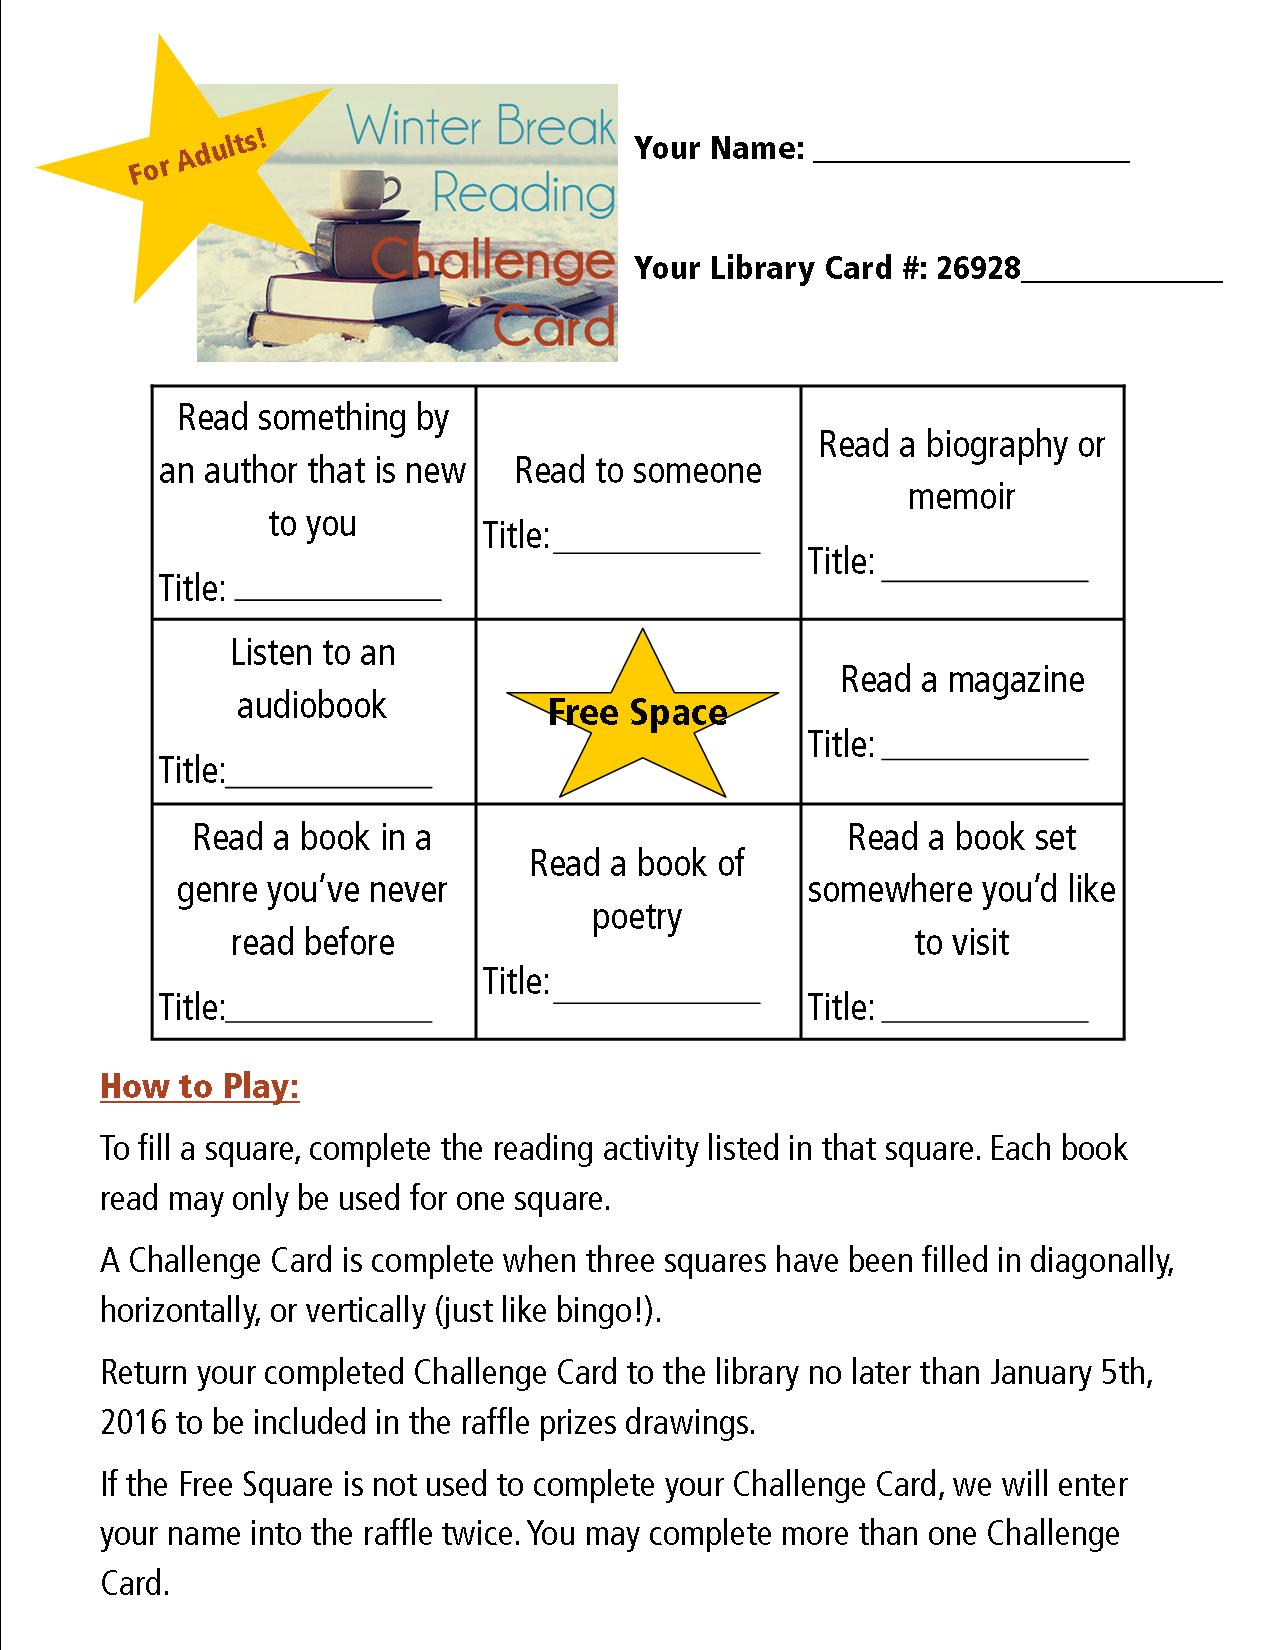 Winter Break Reading Challenge Card For Adults Corvallis